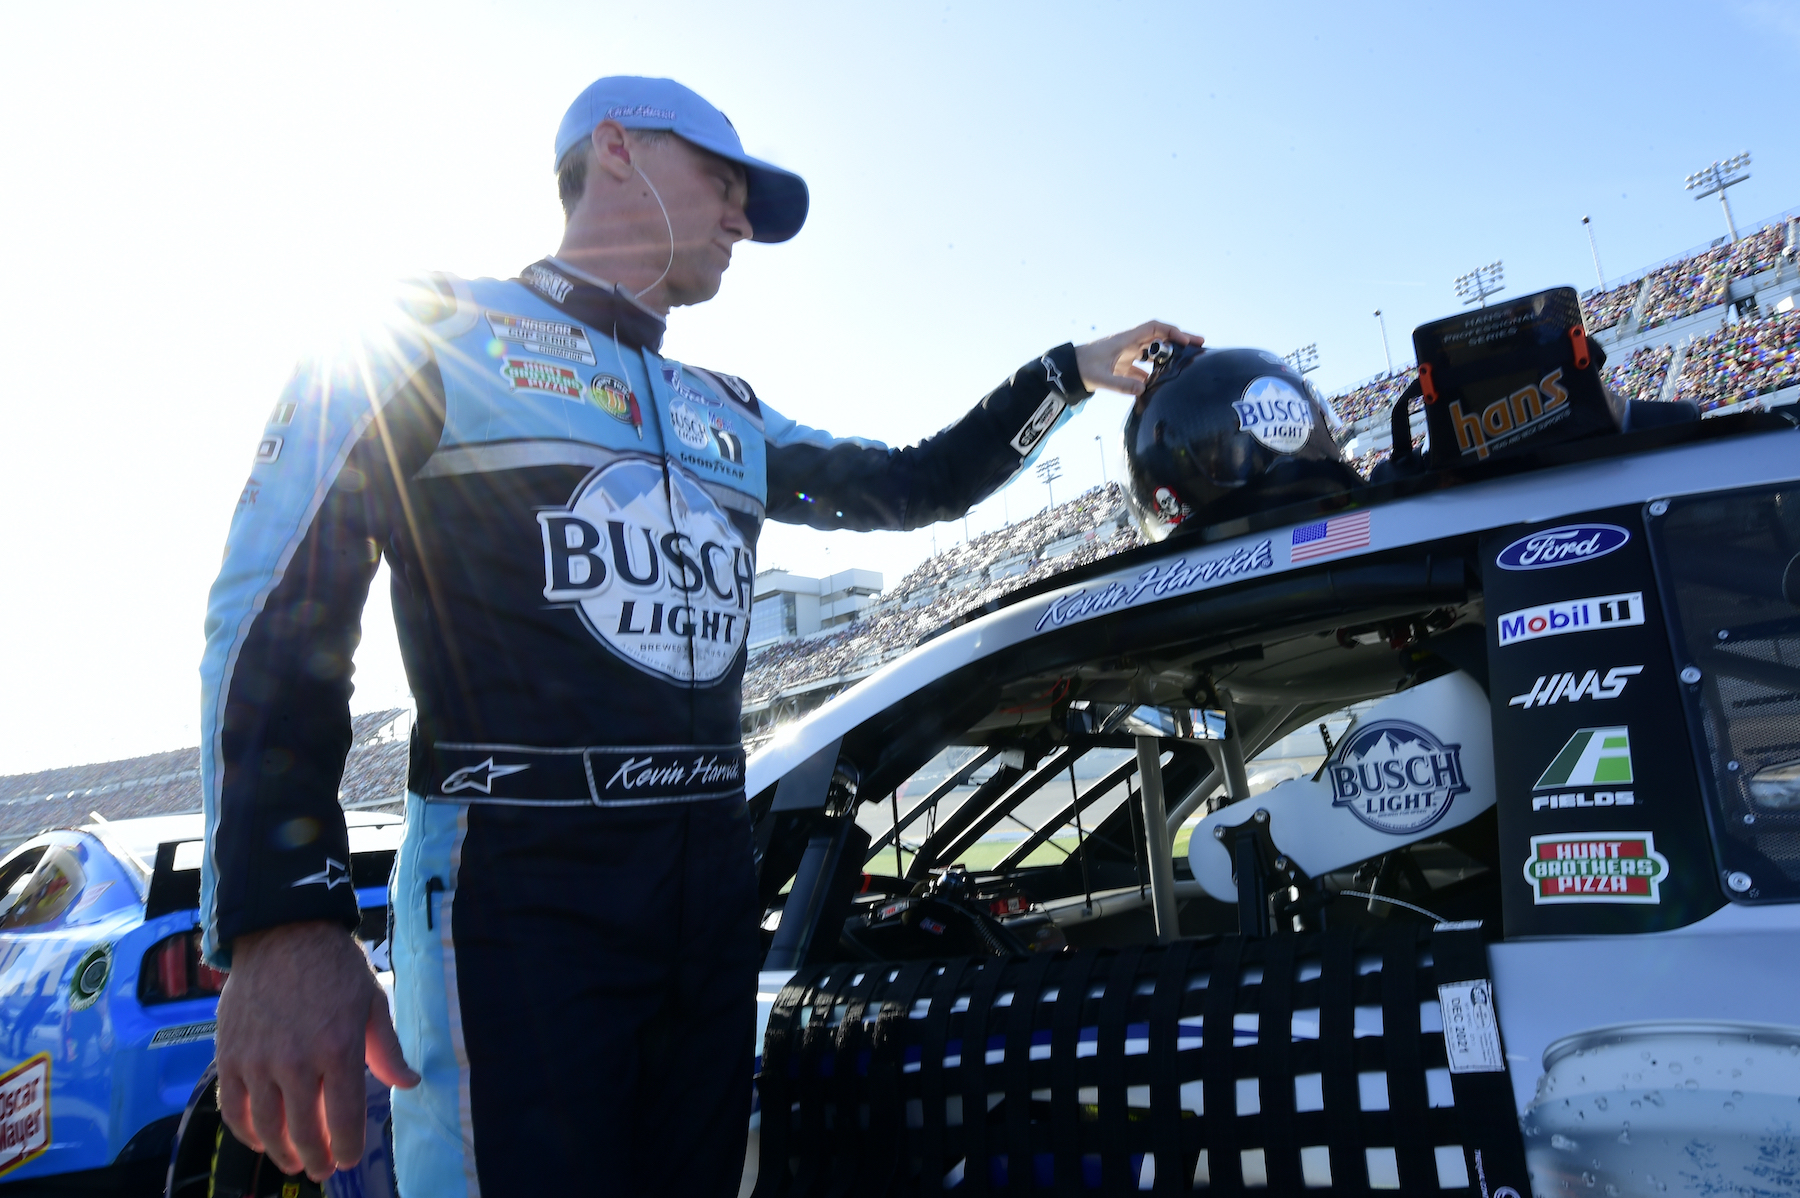 Kevin Harvick, driver of the #4 Busch Light Ford, during the 2020 Daytona 500